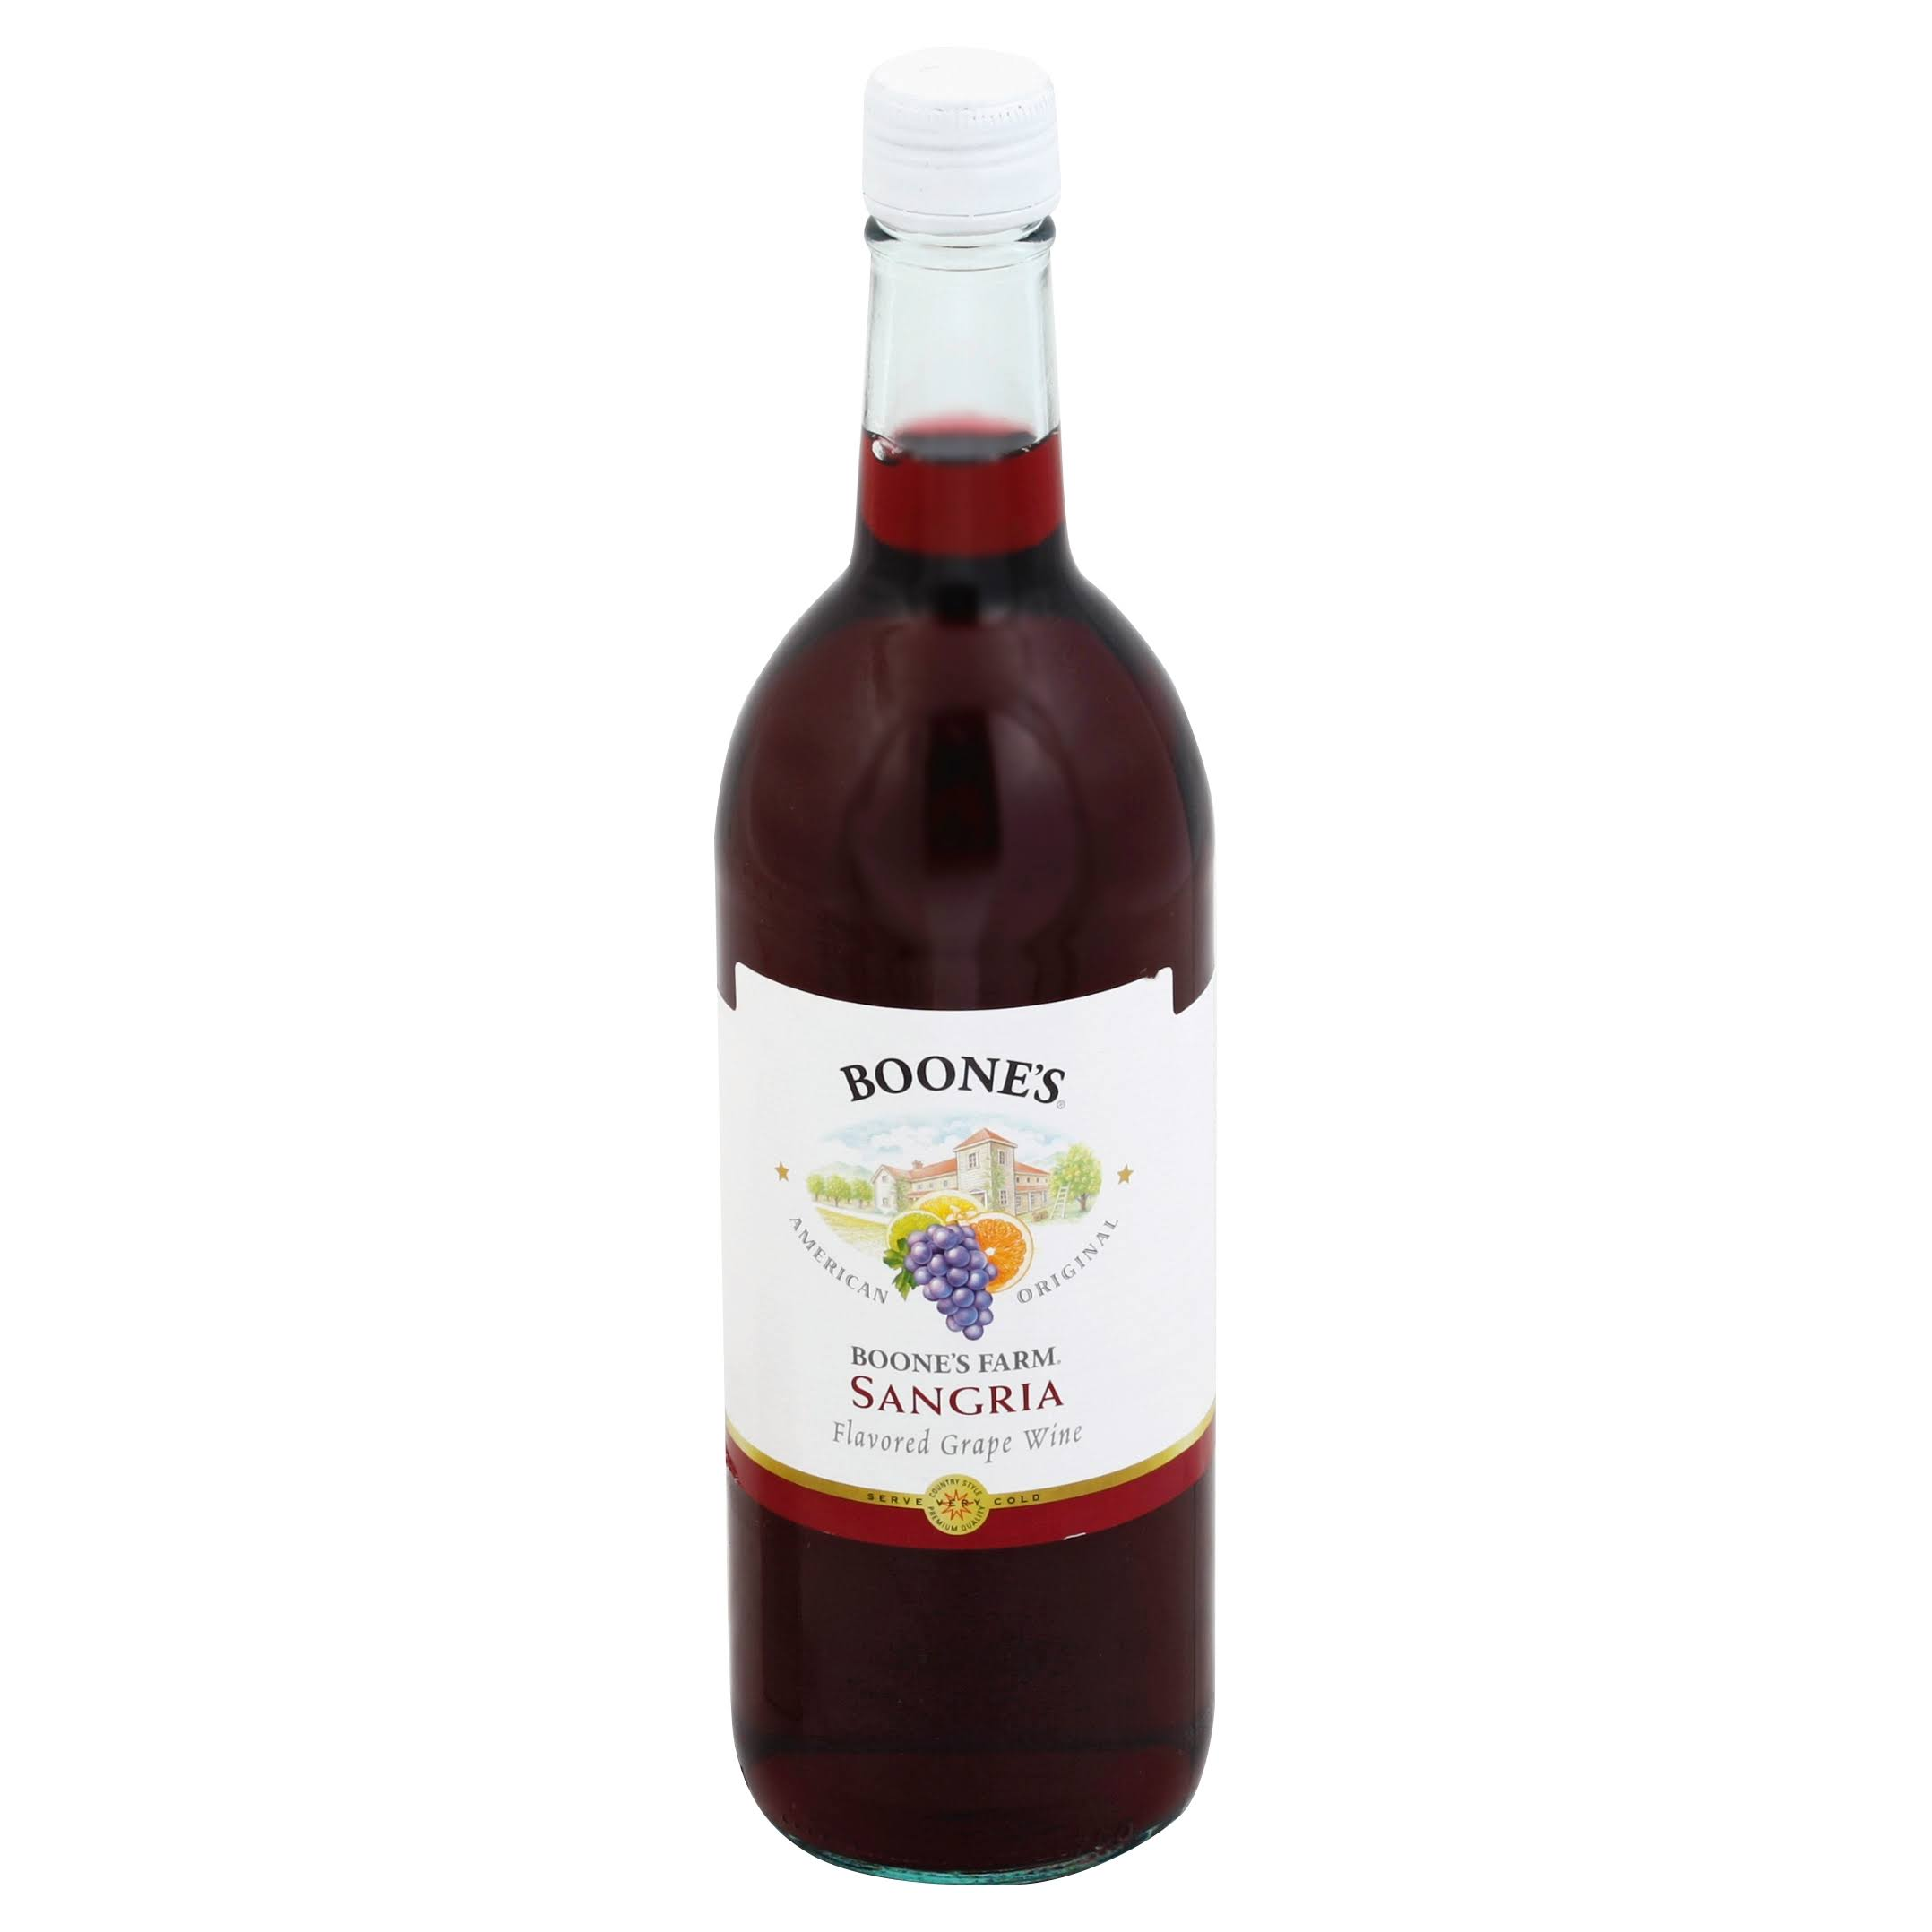 Boone's Farm Grape Wine - Sangria Flavored, 25.36oz